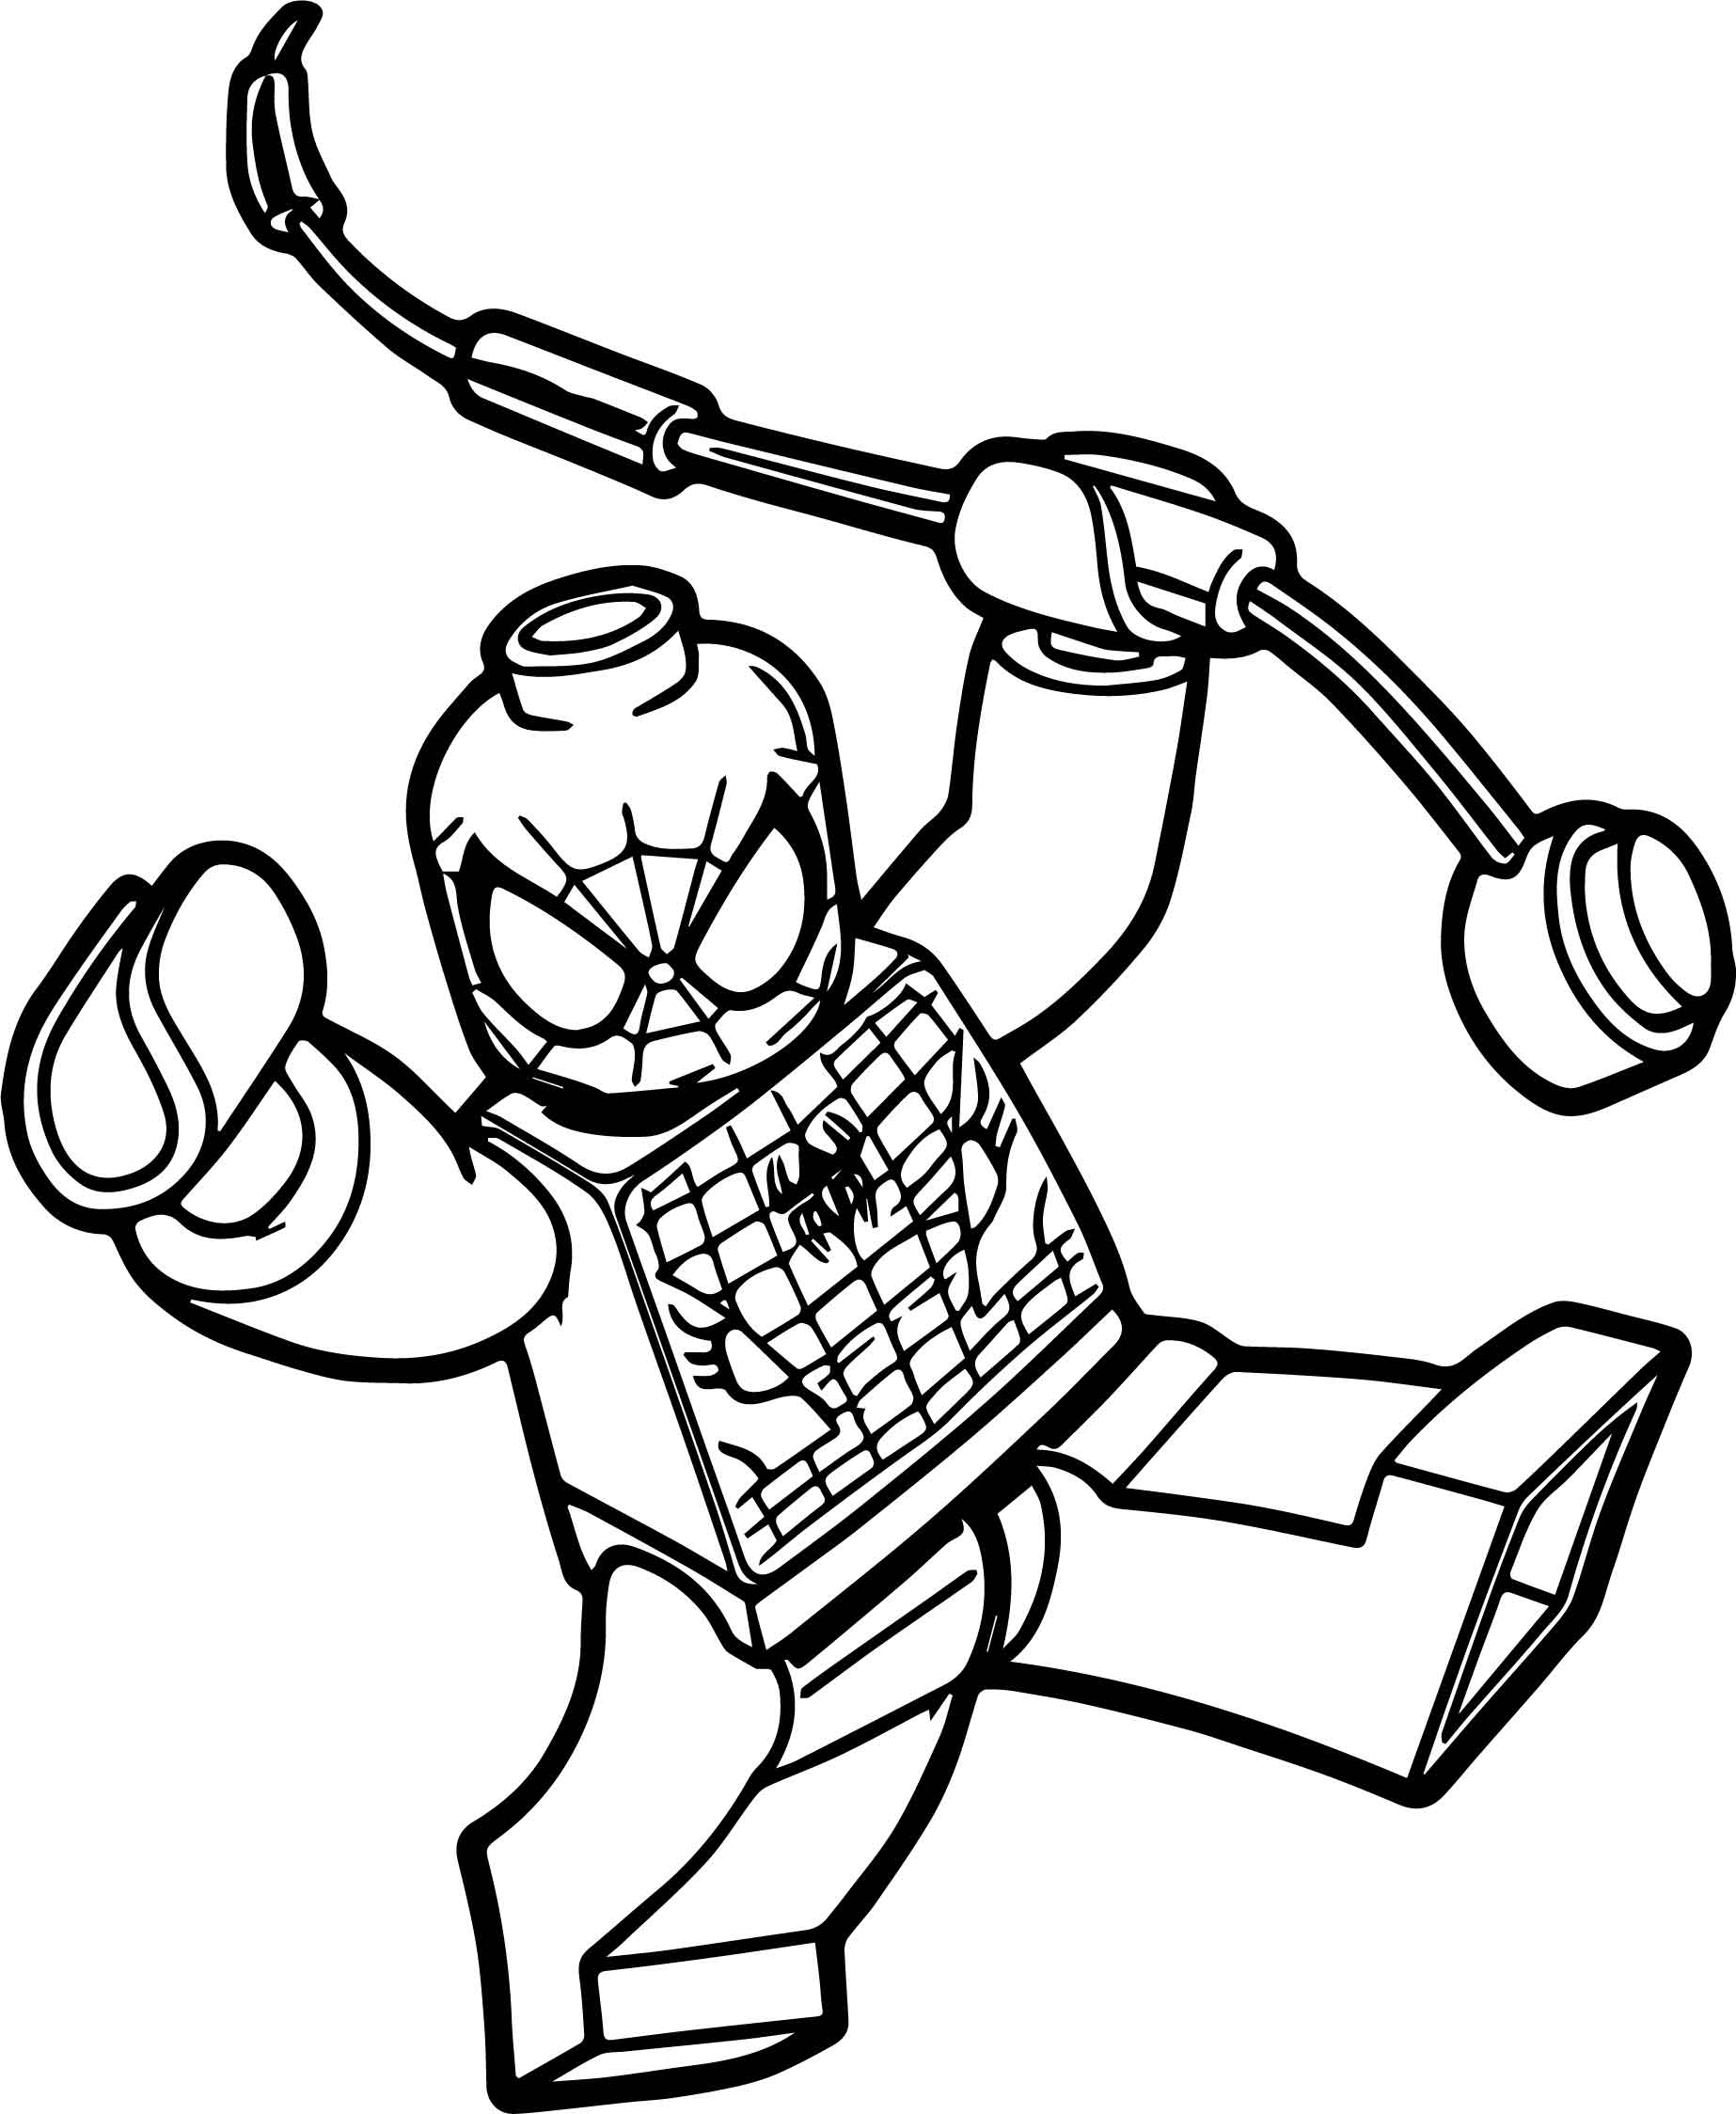 spiderman car coloring pages lego spiderman car coloring pages coloring sheets pages coloring car spiderman